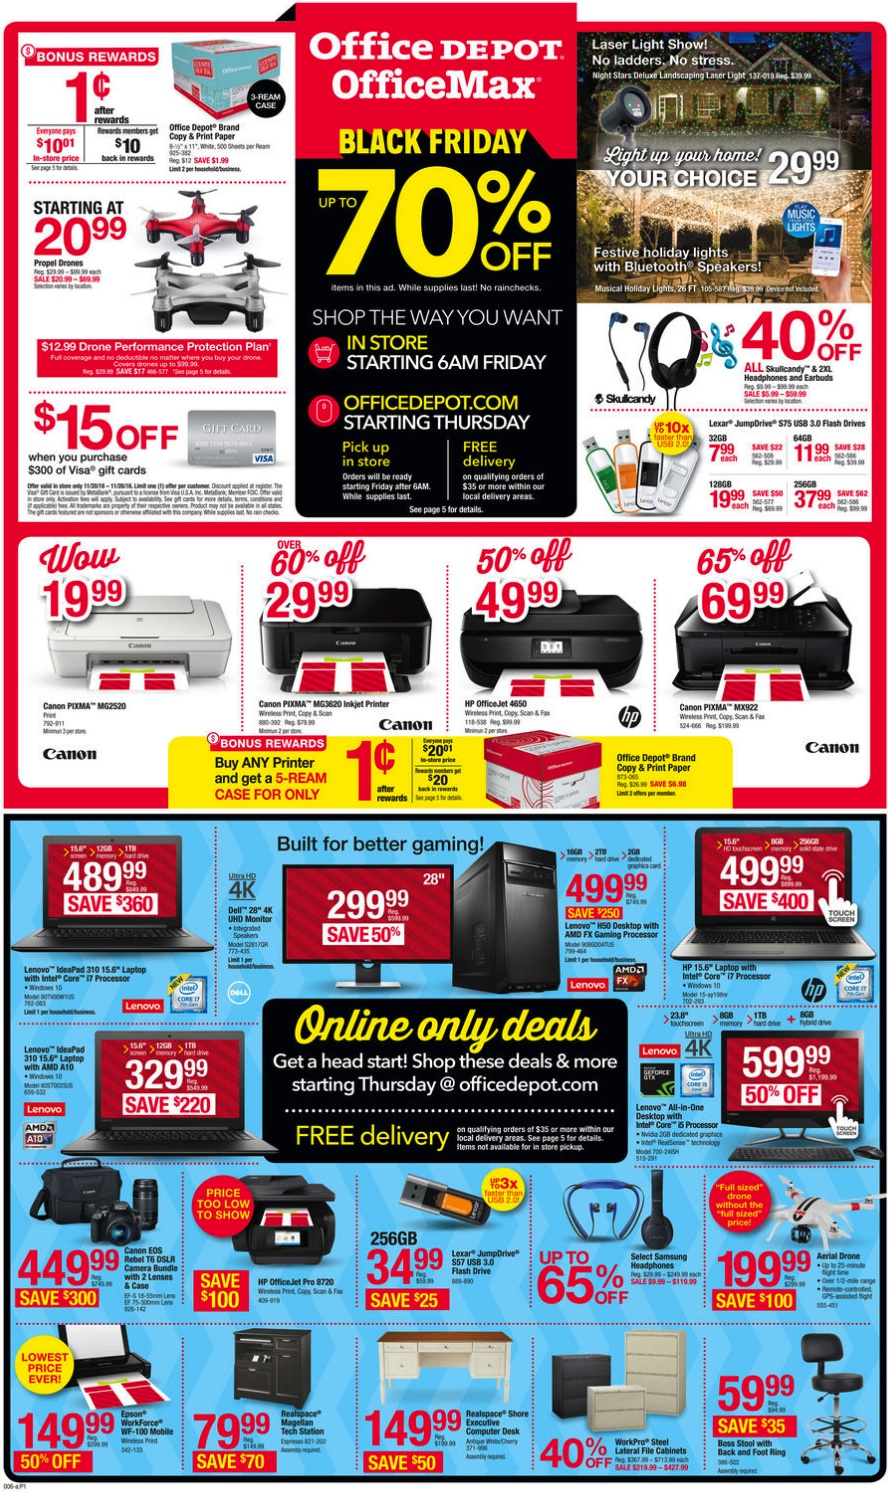 Office Depot And Officemax On Black Friday 2017 Funtober